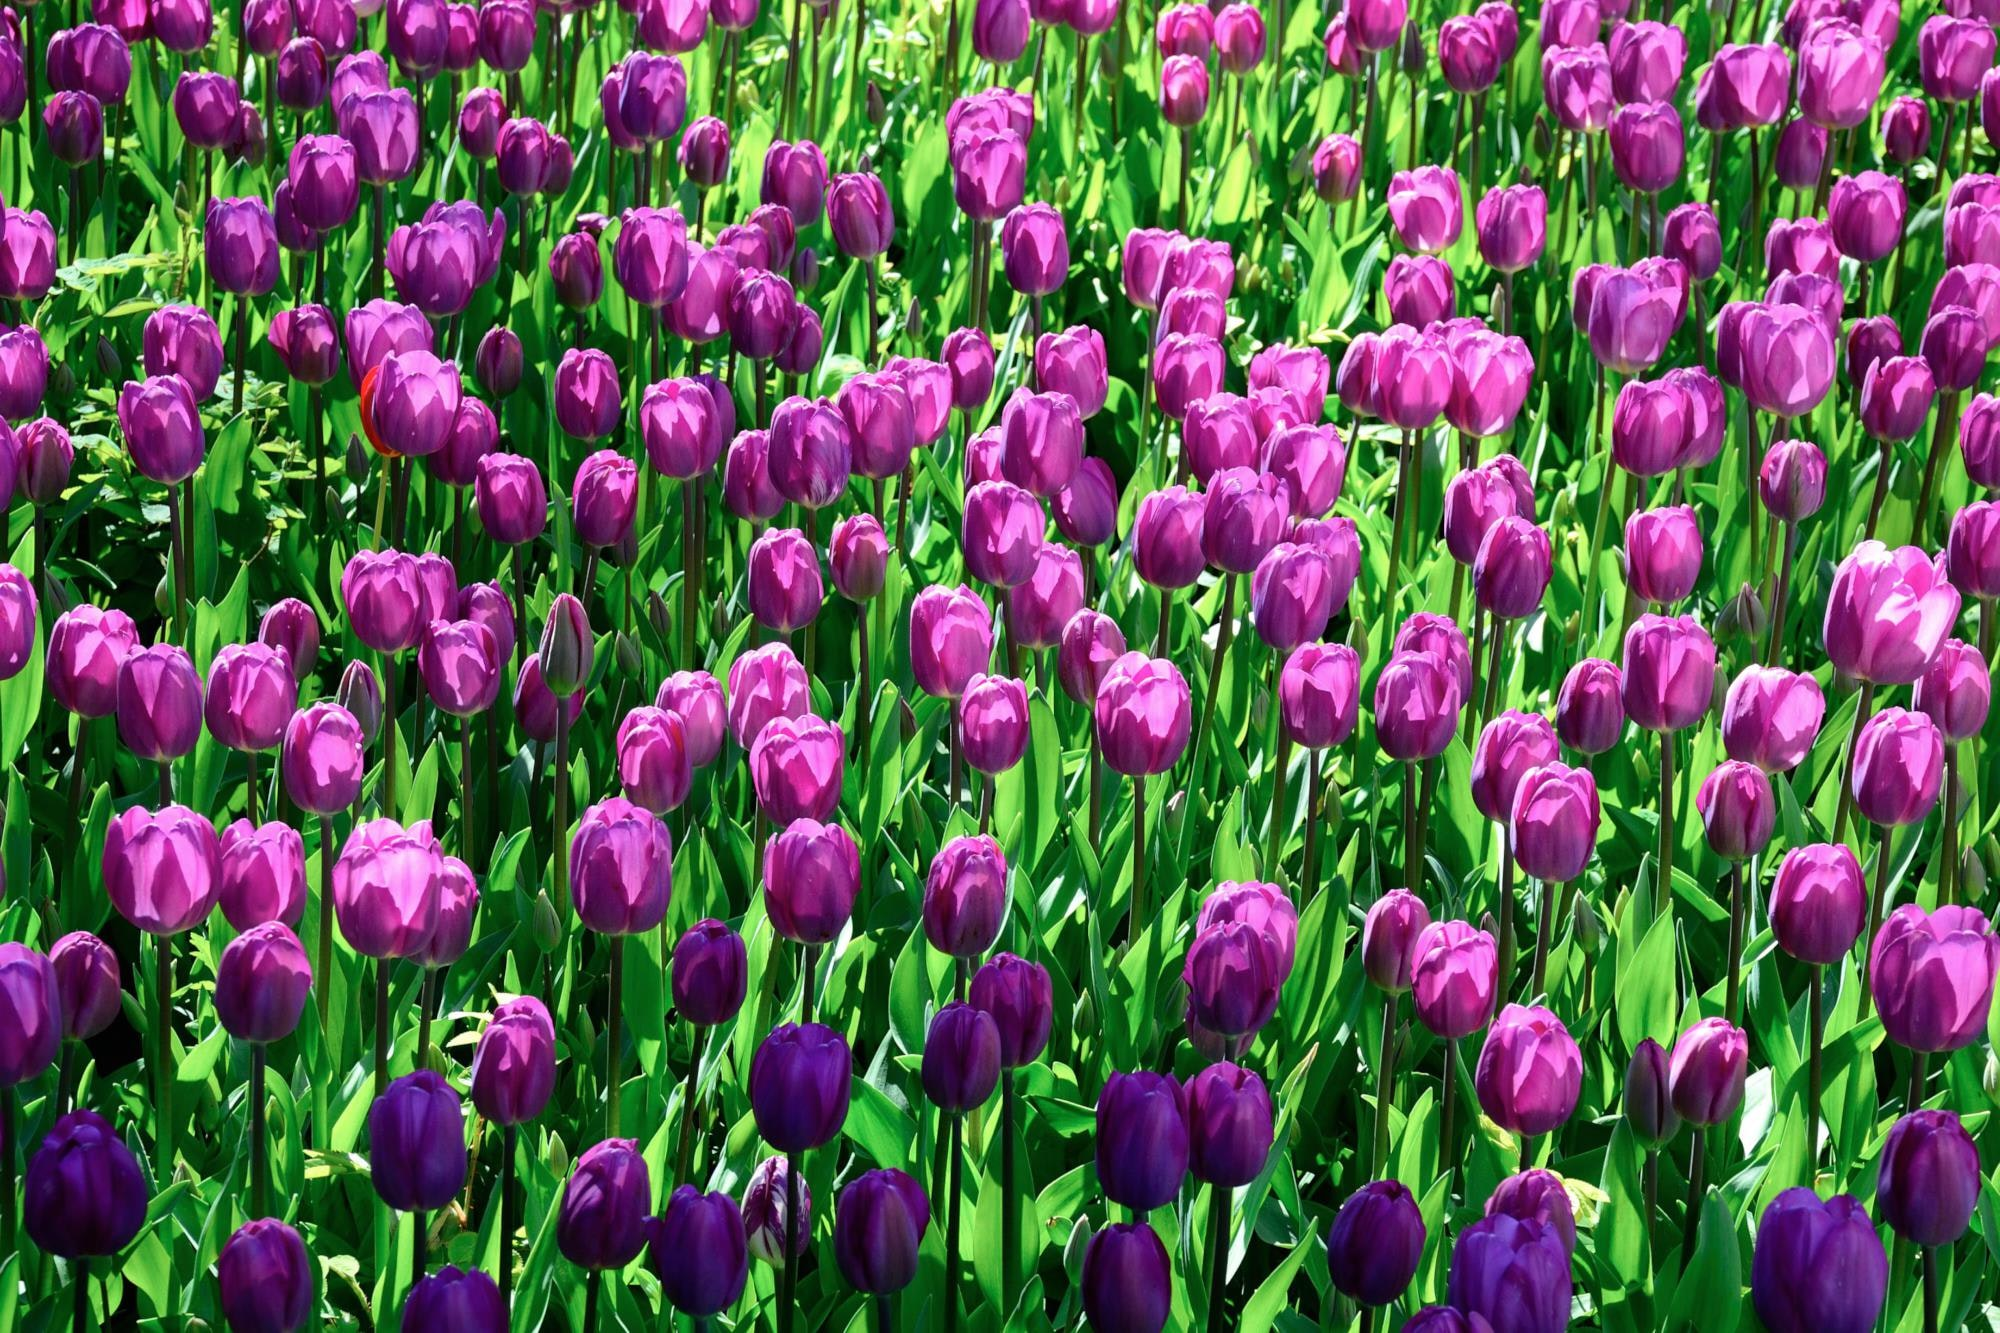 A large group of purple tulips slowly opening up their petals